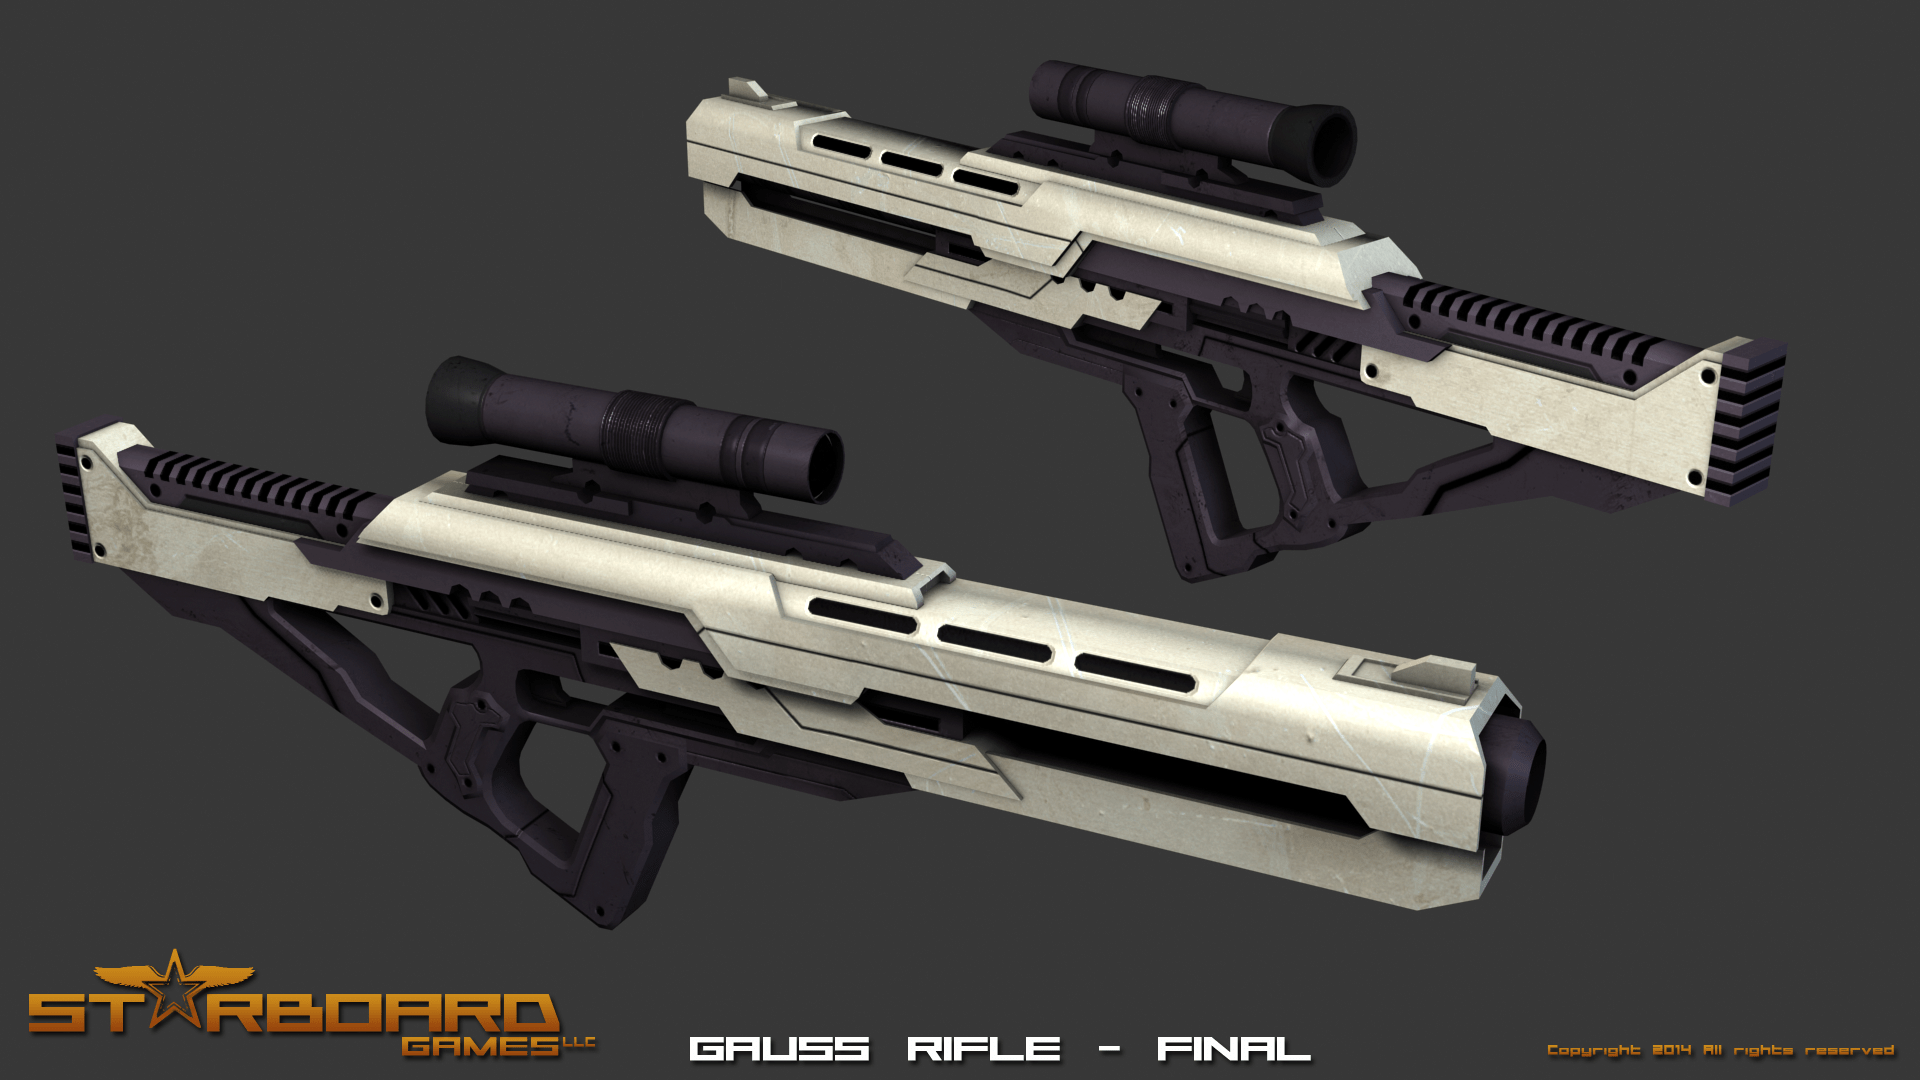 ARS Gauss Rifle